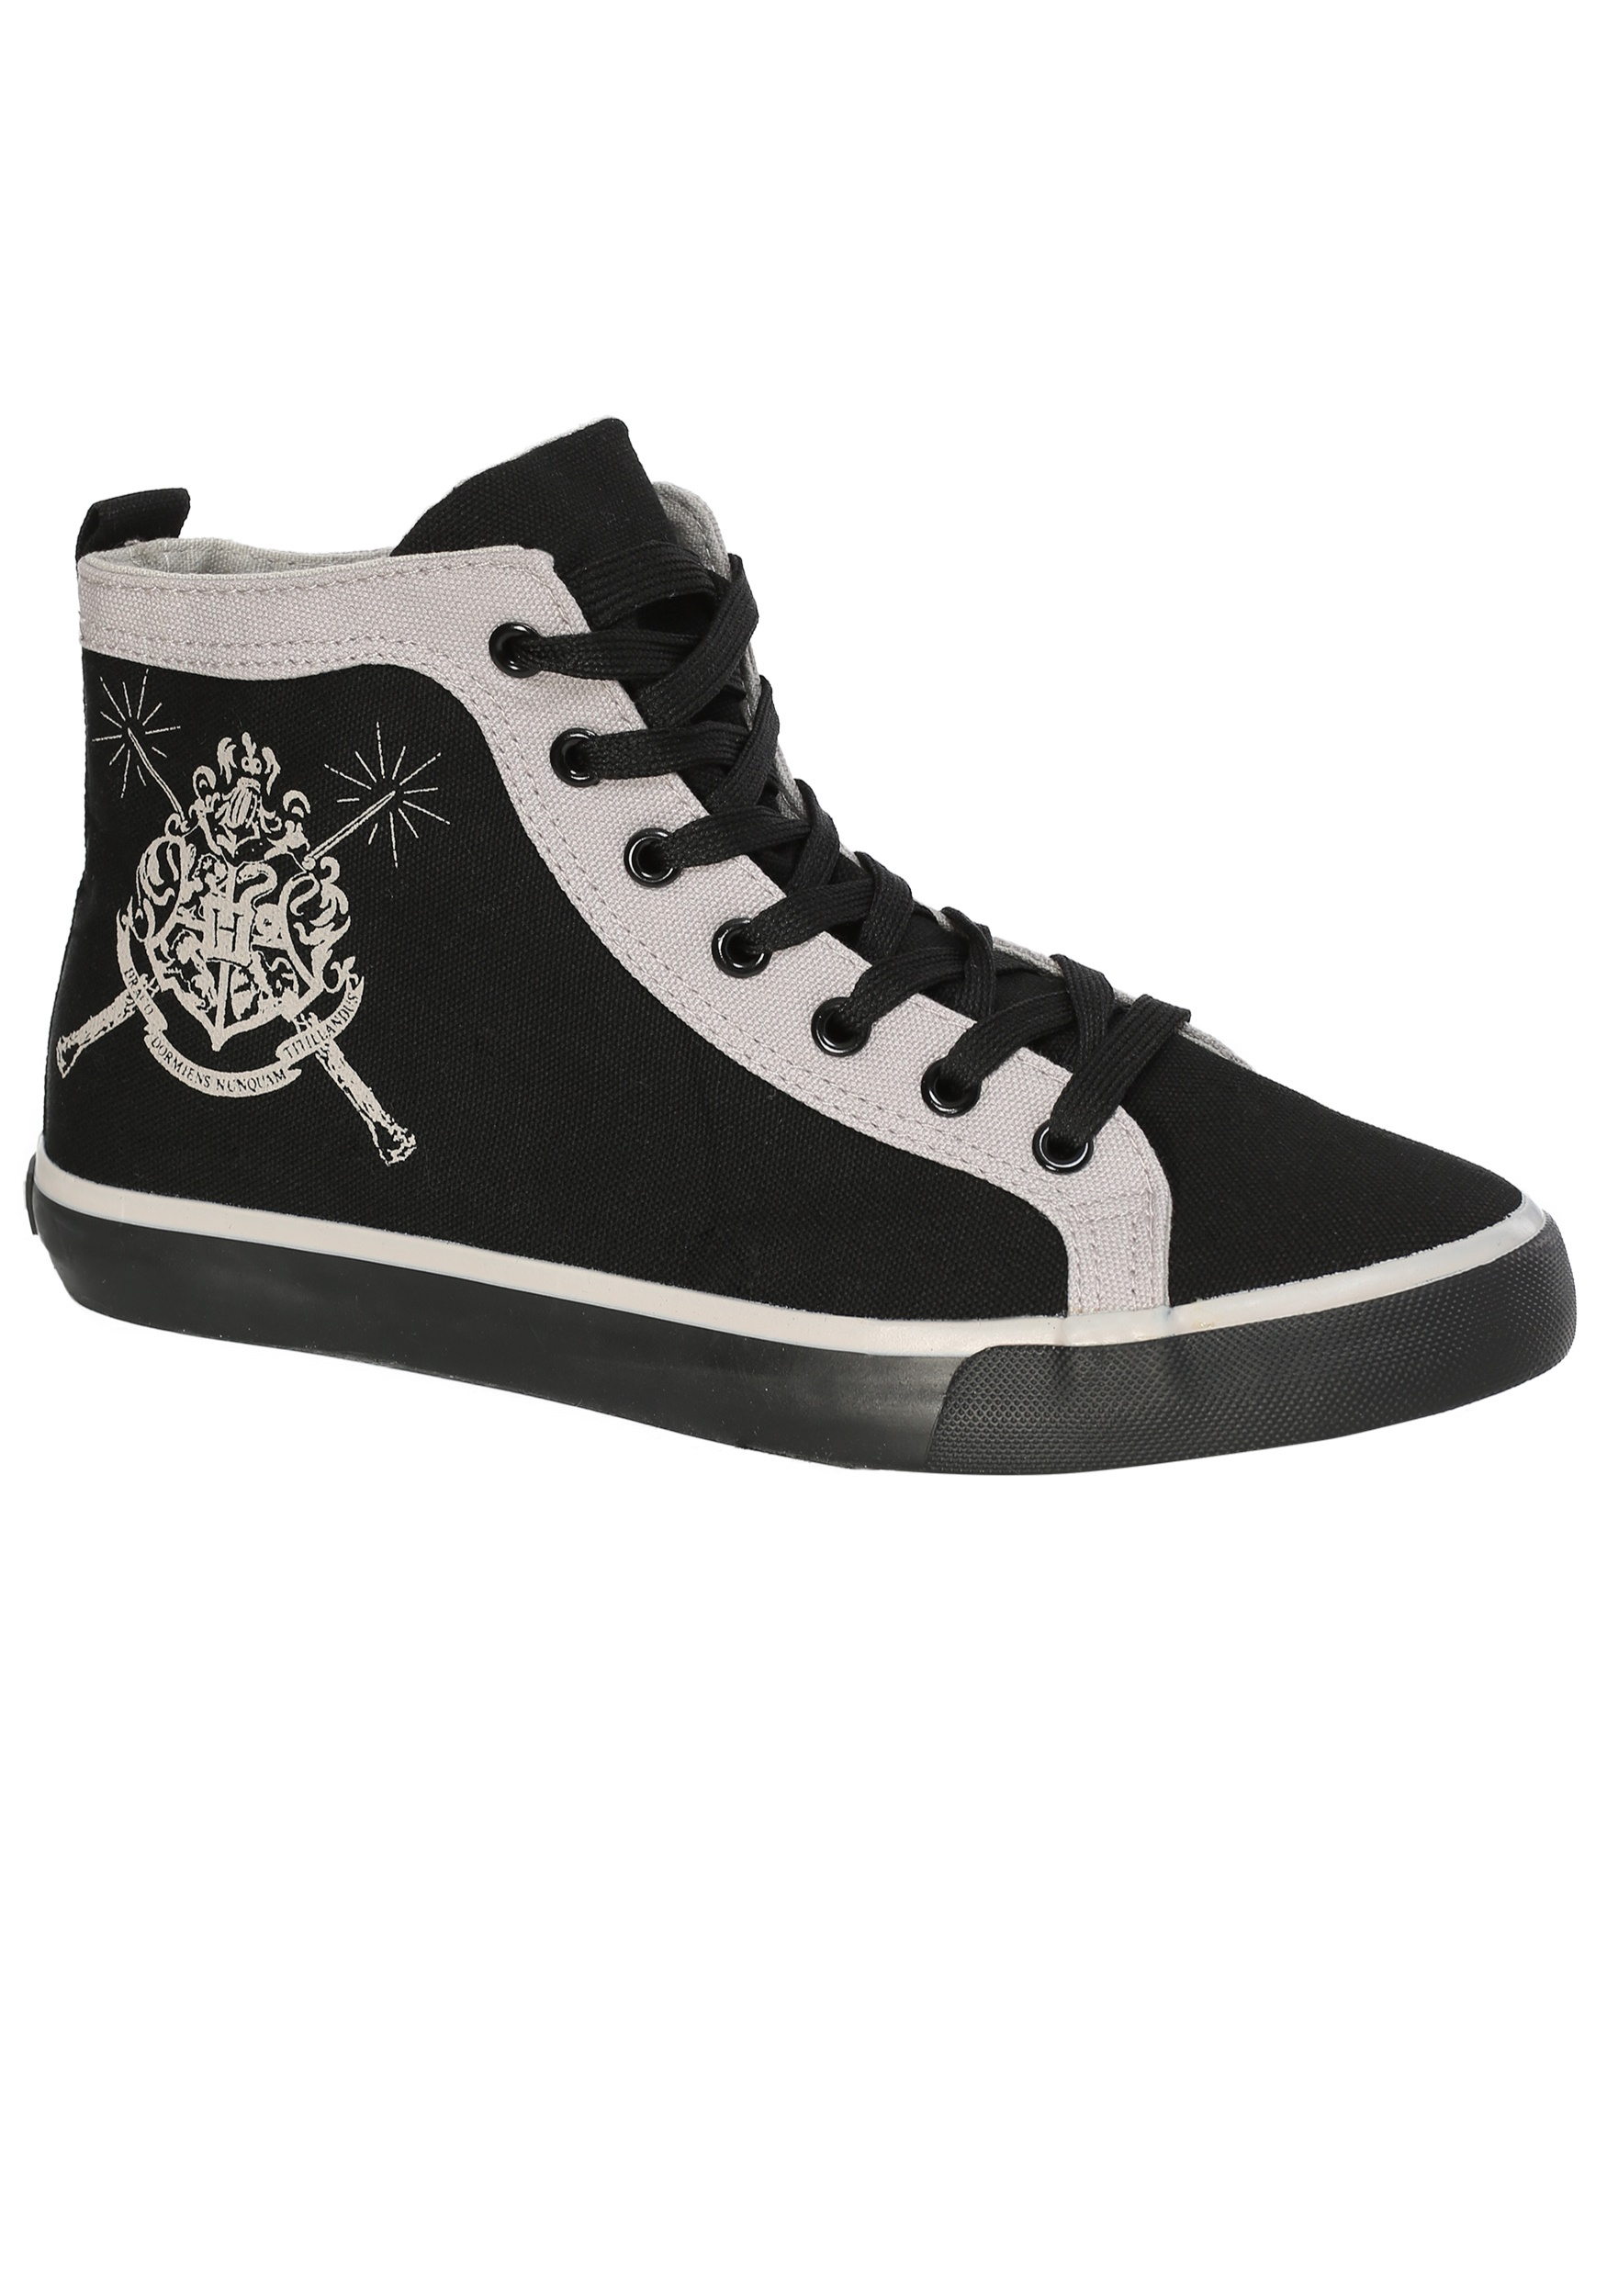 9cb6a0724093 Harry Potter High Top Adult Shoes